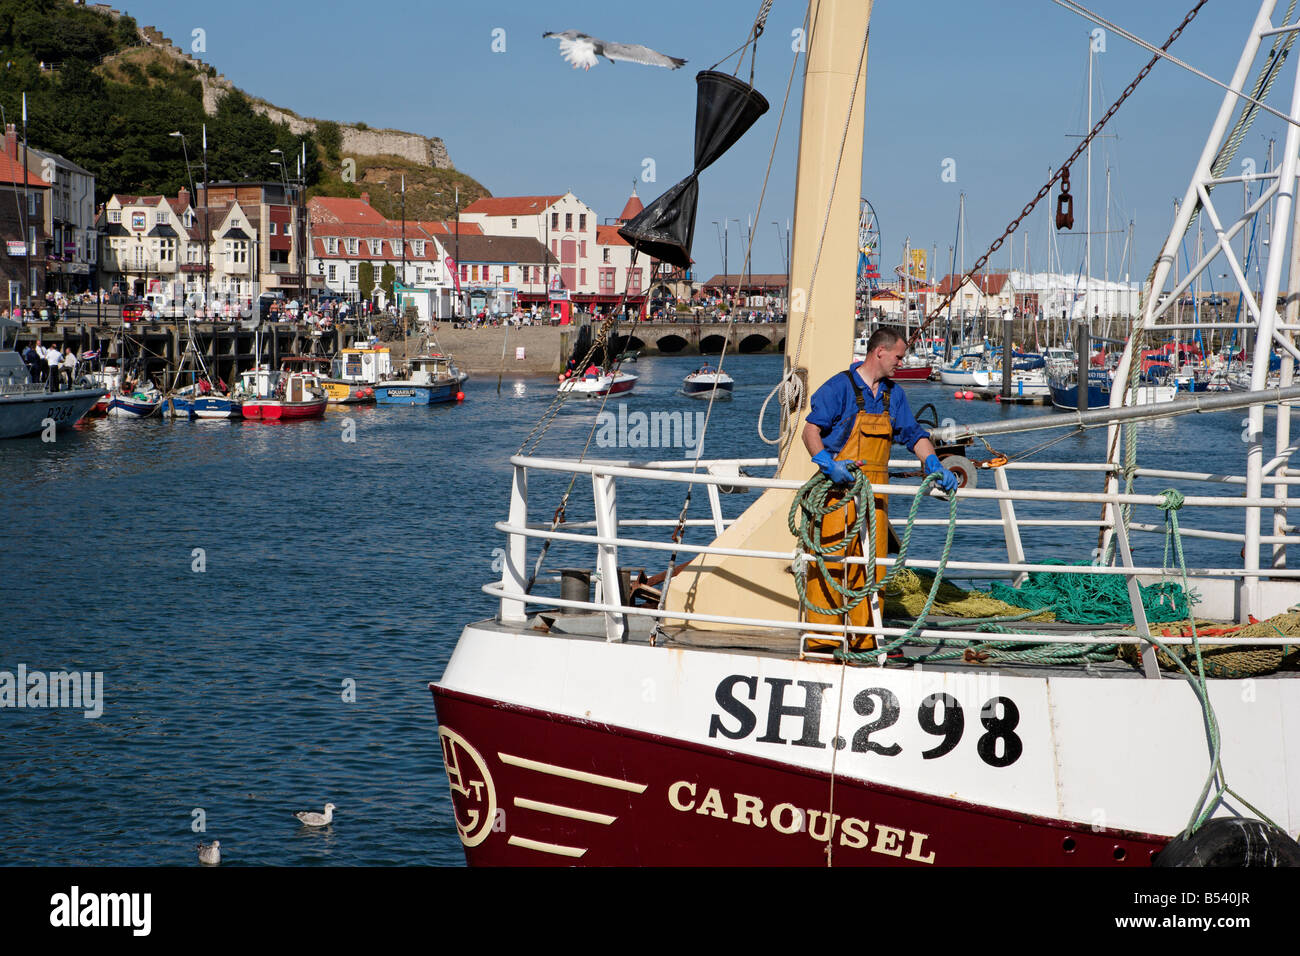 Scarborough Harbour and Harbourside - Stock Image